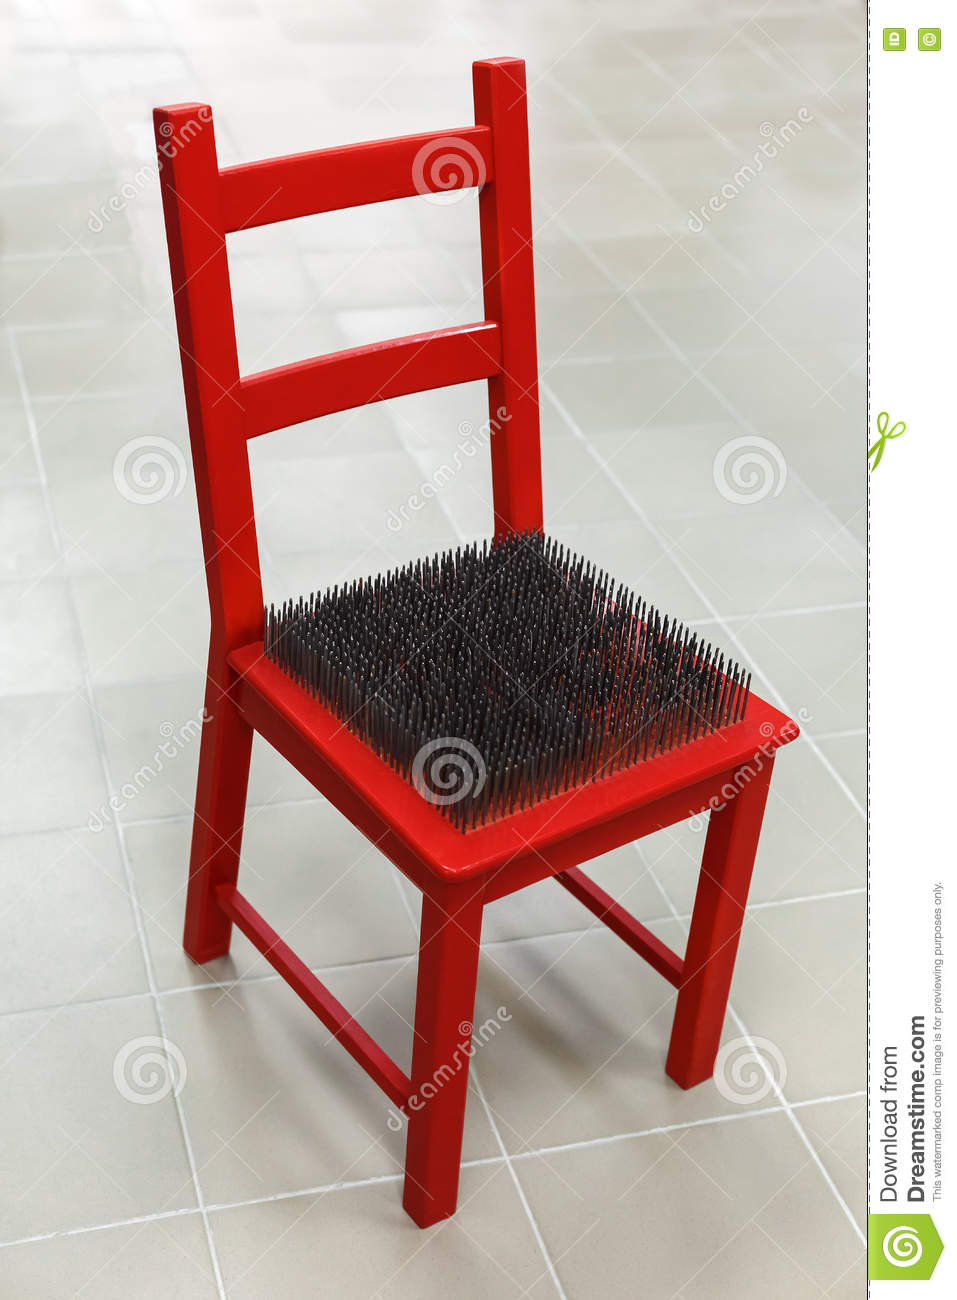 Red Chair With Spikes On The Seat Stock Image